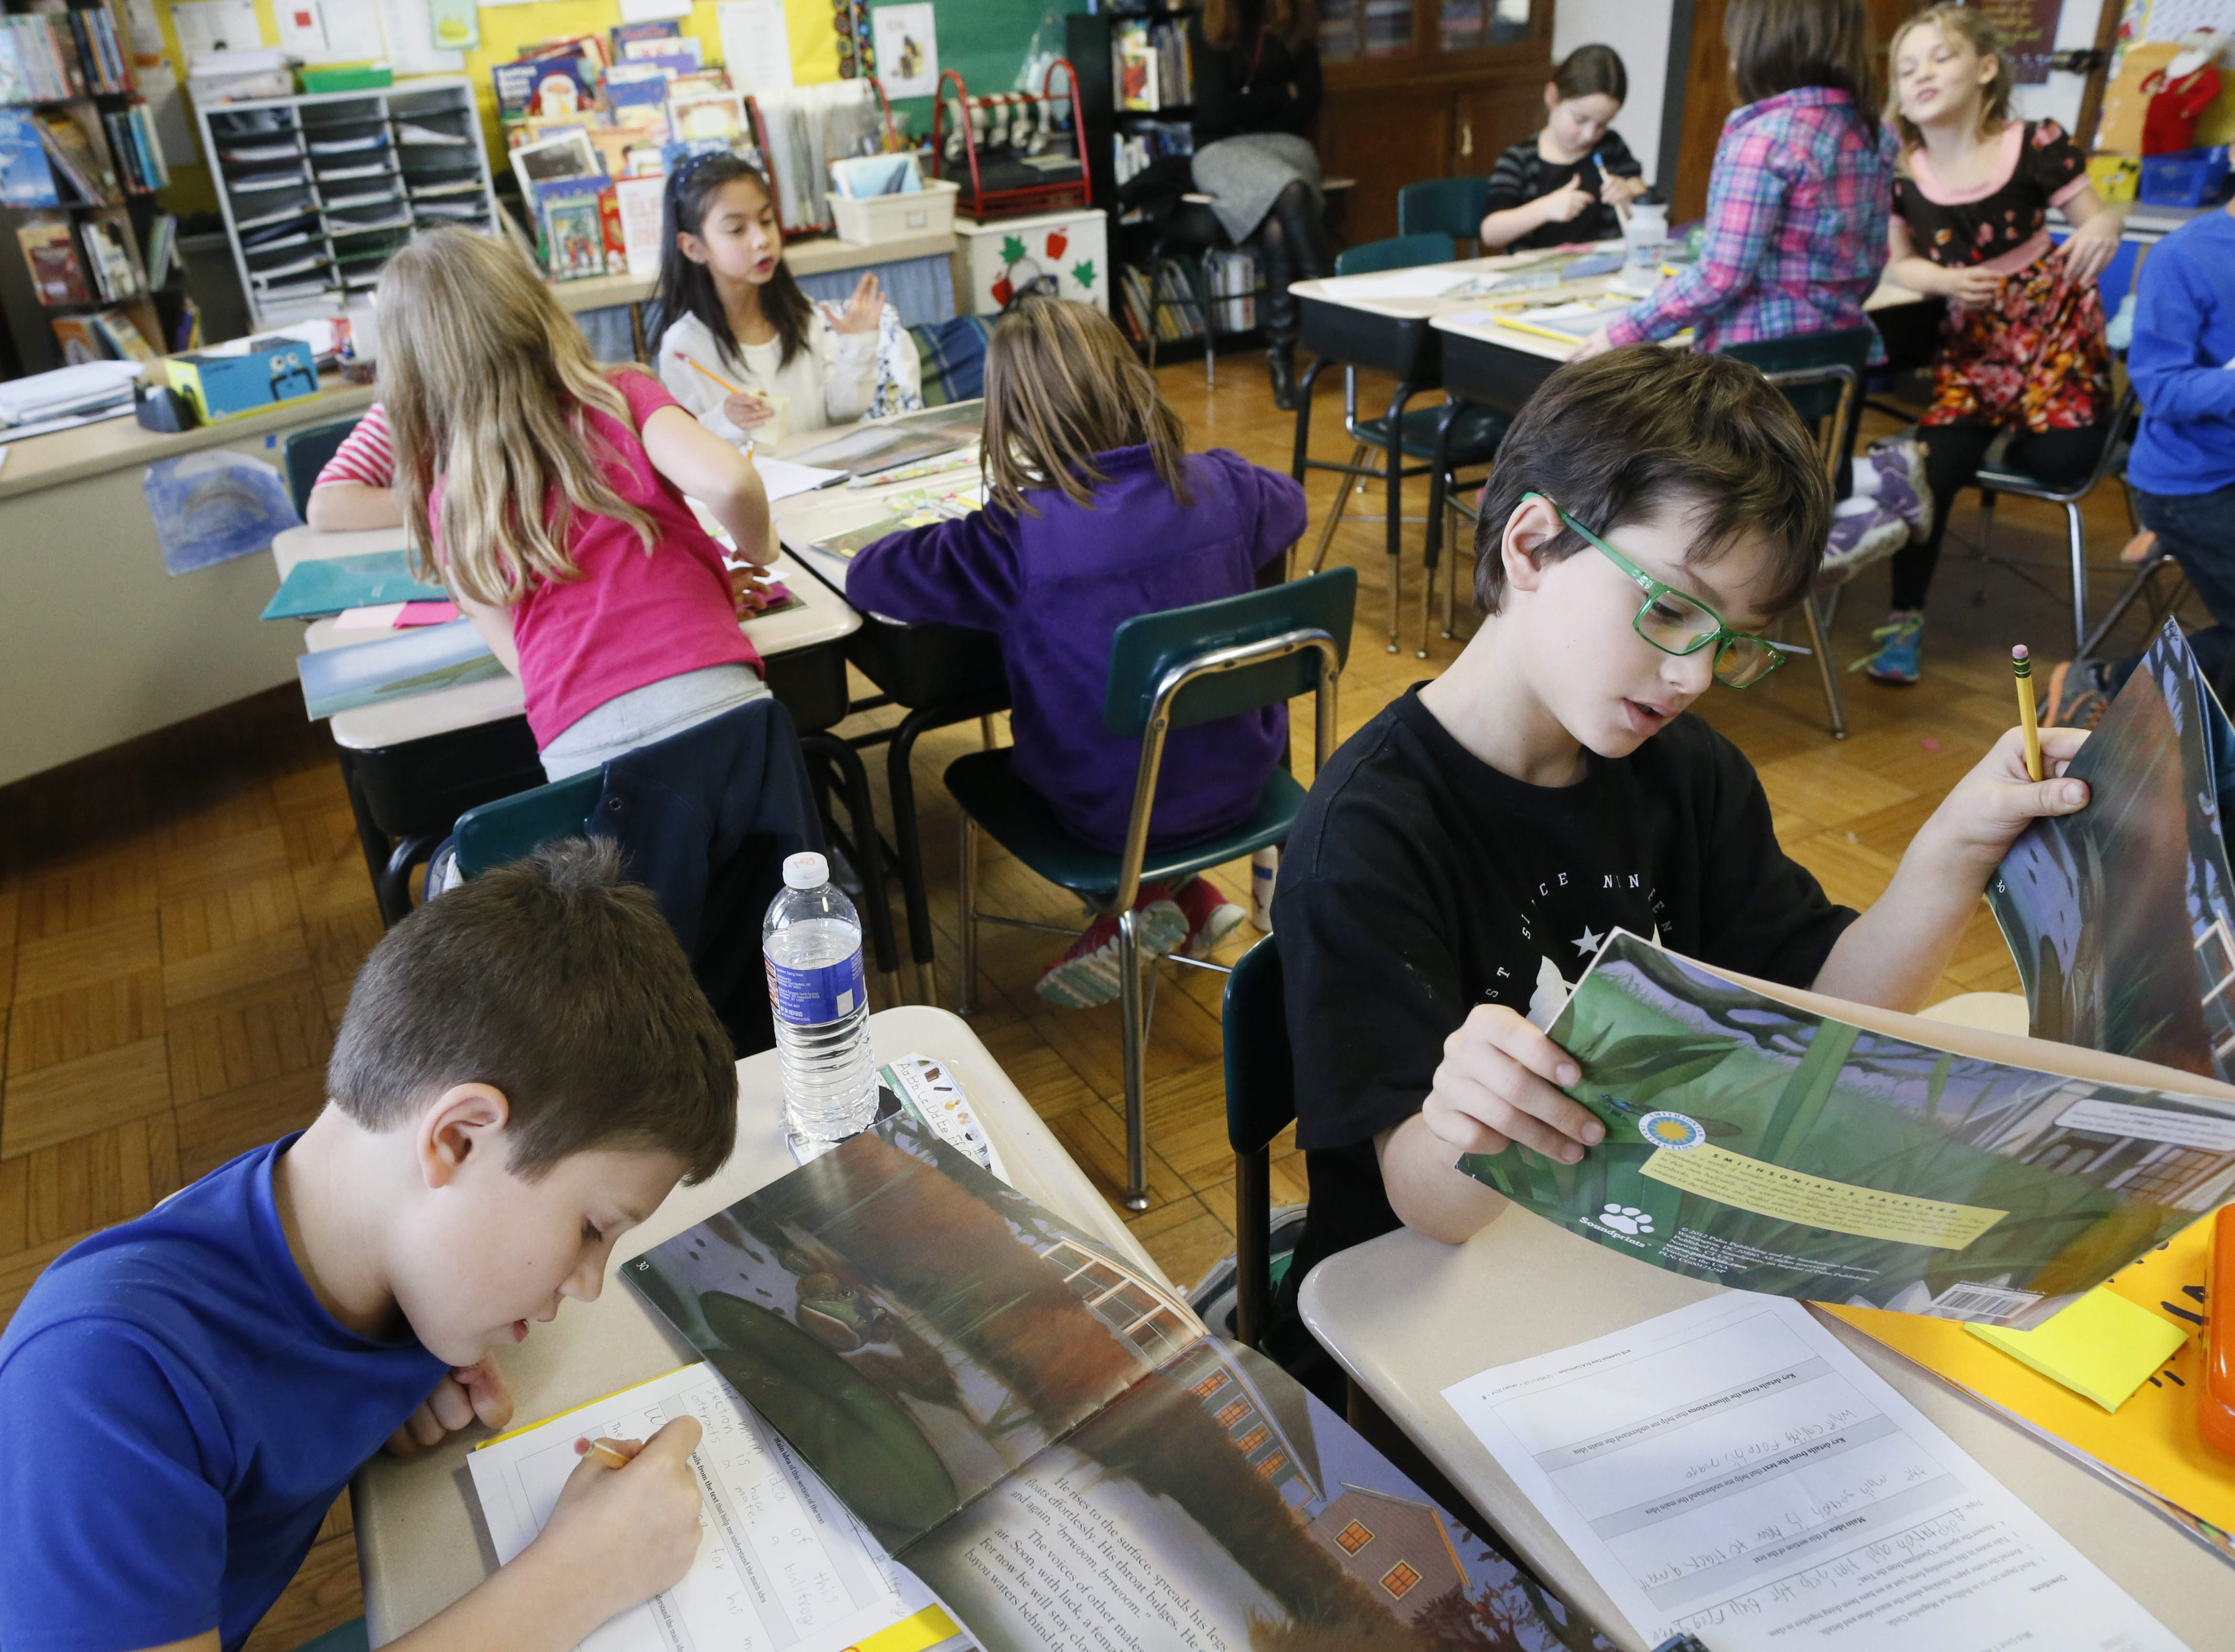 Third graders work on a close-reading exercise in Tiffany Kwas' class at Eden Elementary School as Common Core standards set higher goals for students. (Derek Gee/Buffalo News file photo)